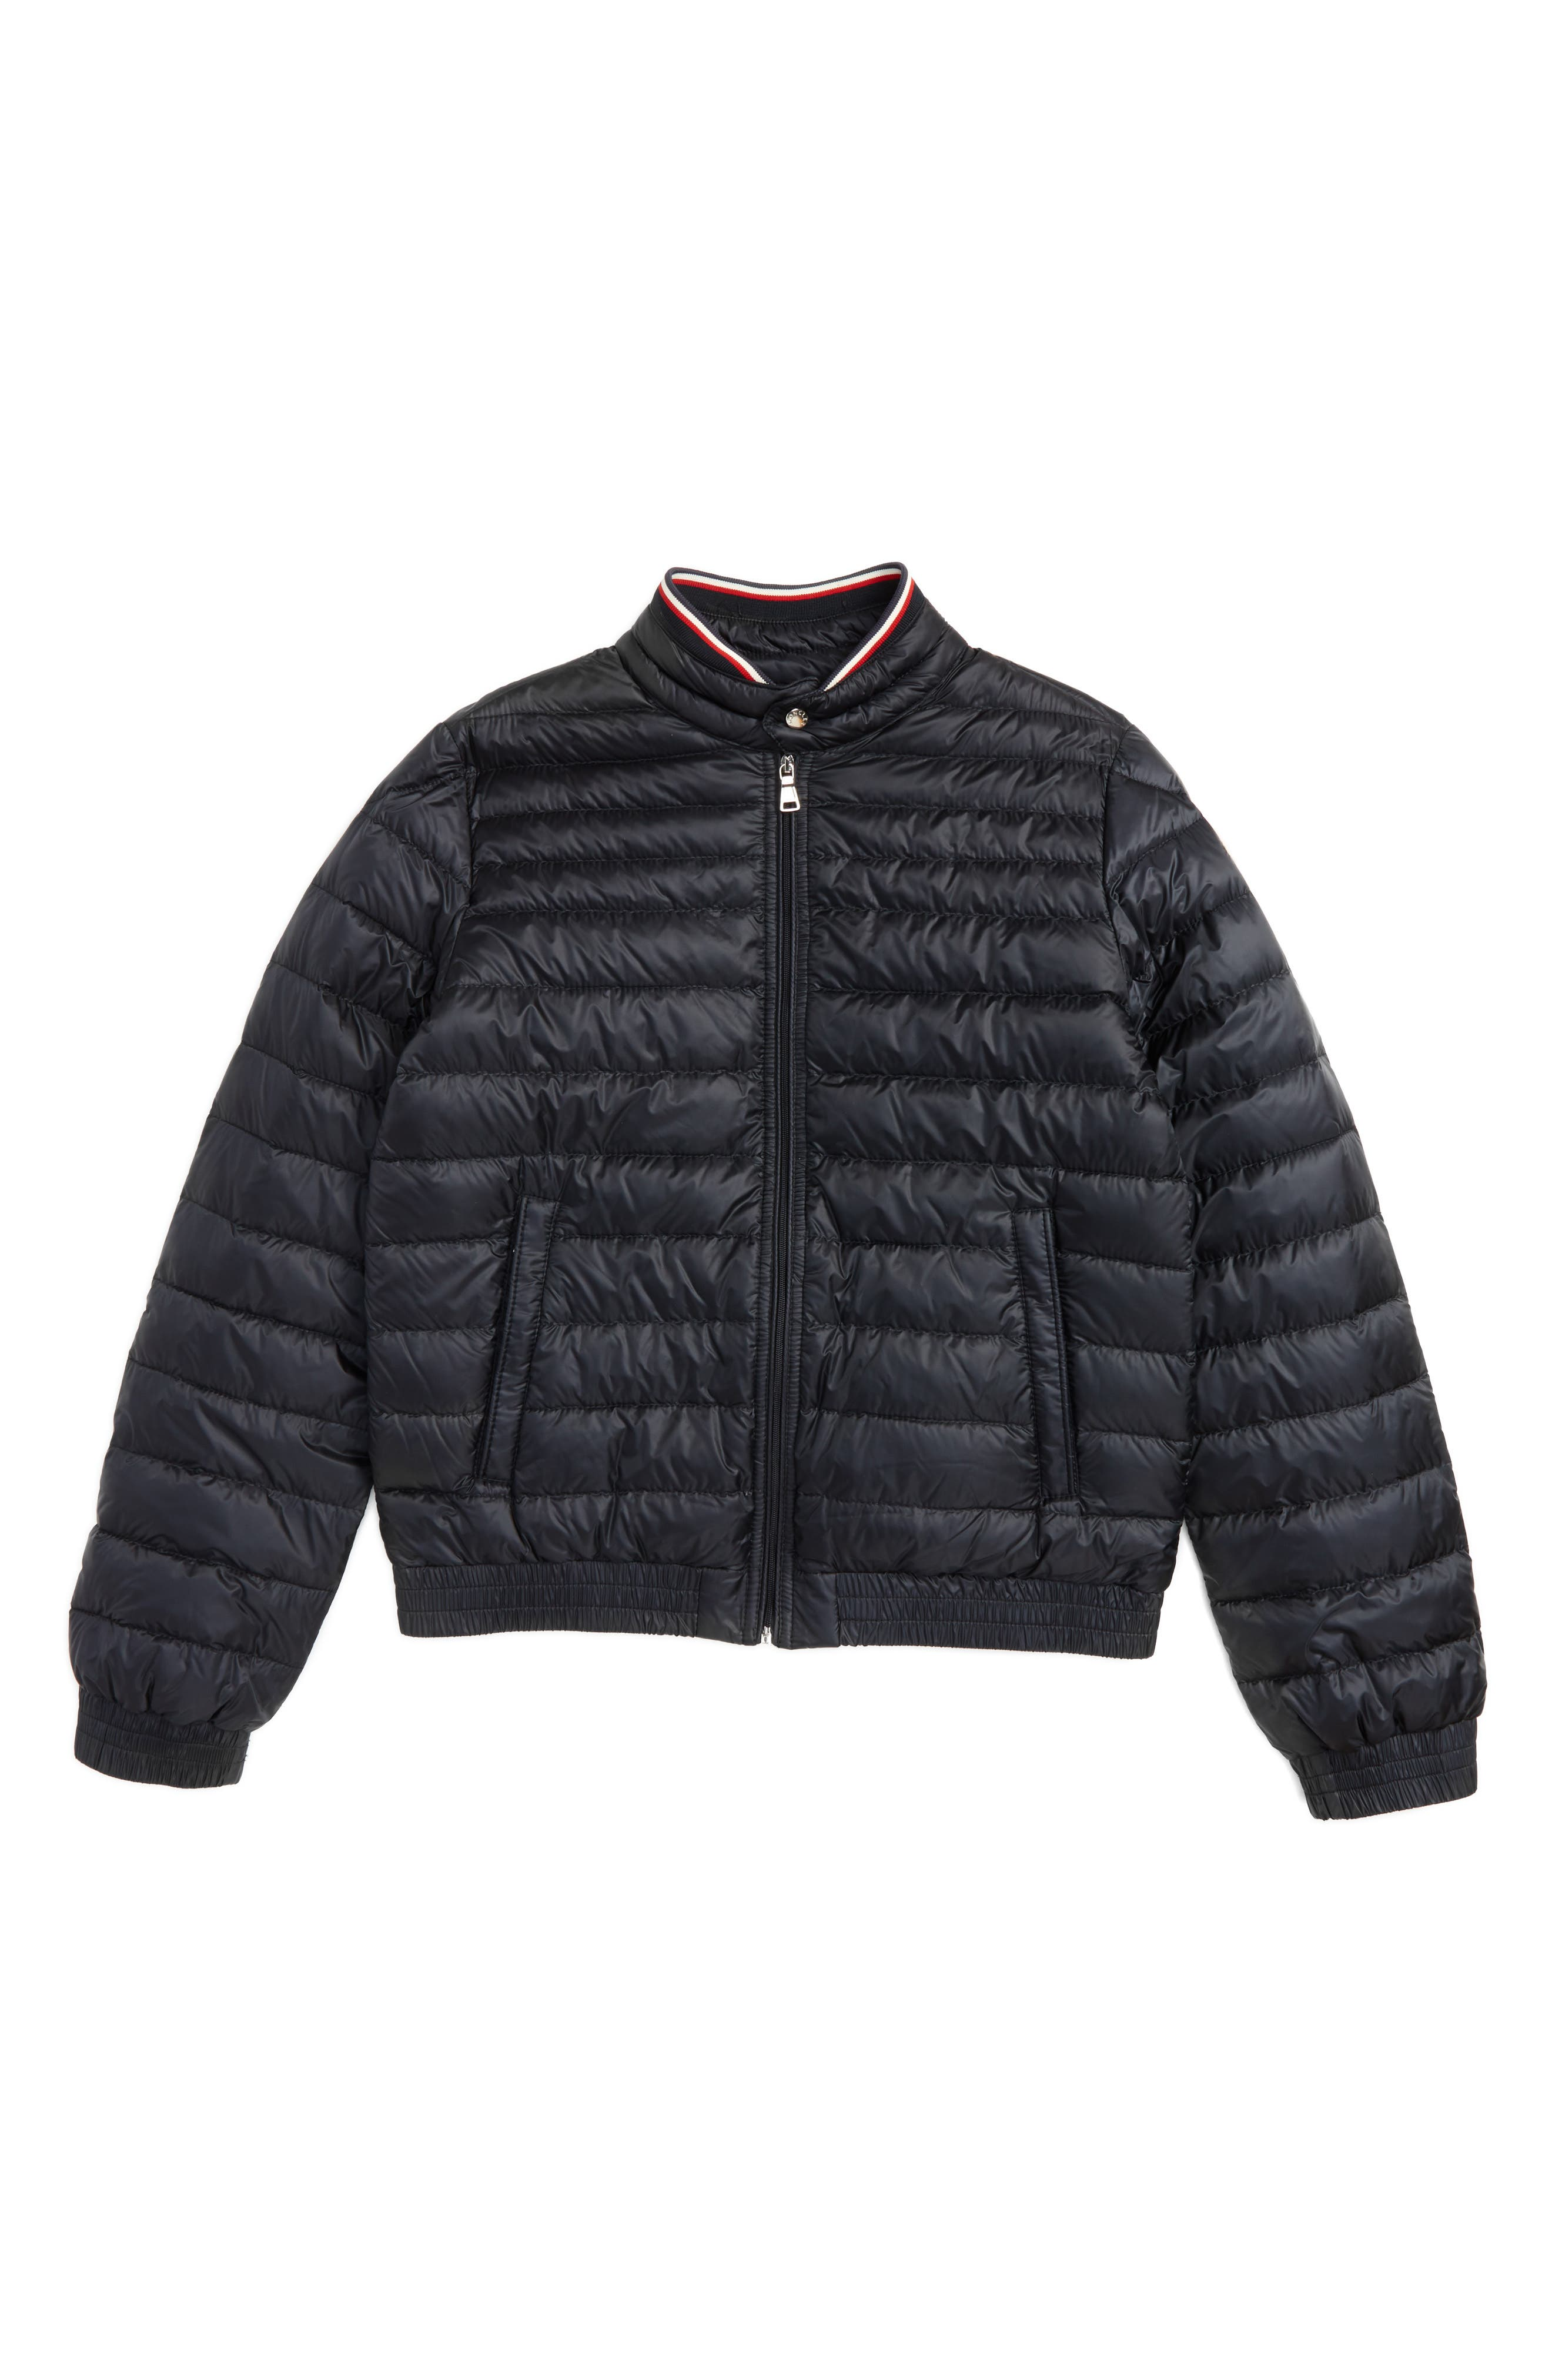 Alternate Image 1 Selected - Moncler Garin Water Resistant Down Moto Jacket (Little Kids & Big Kids)